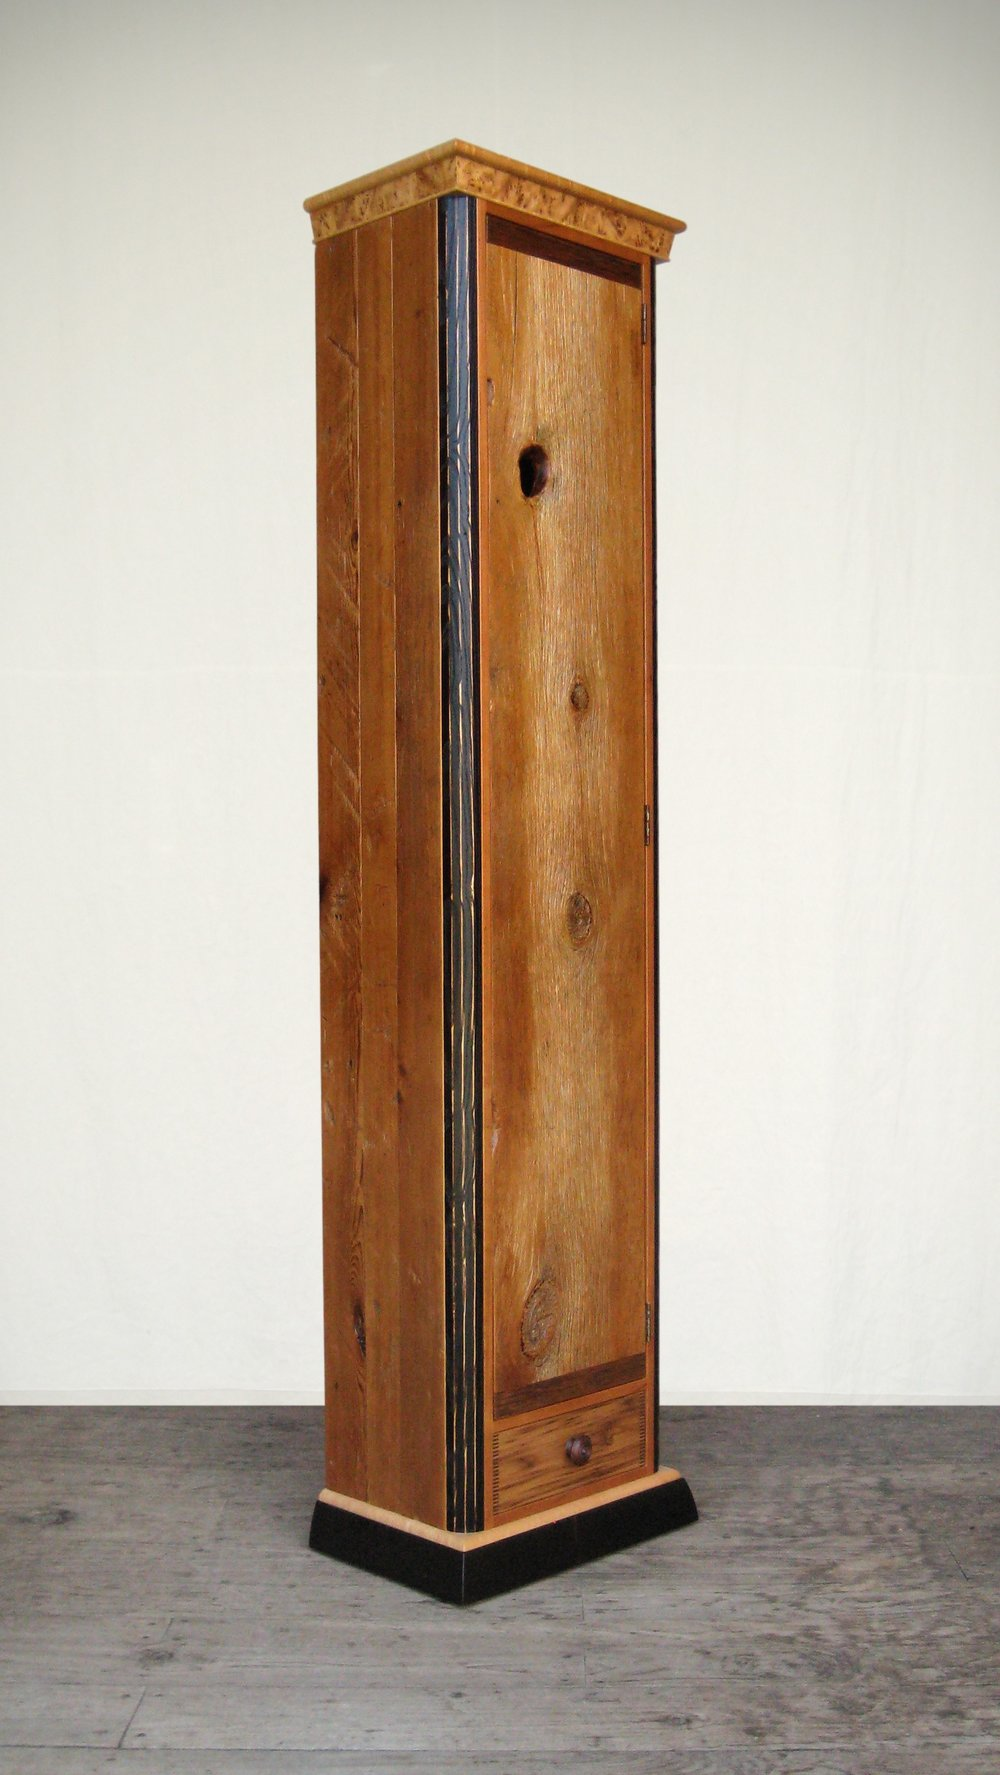 cabinet-tall-cabinet-2-002.jpg